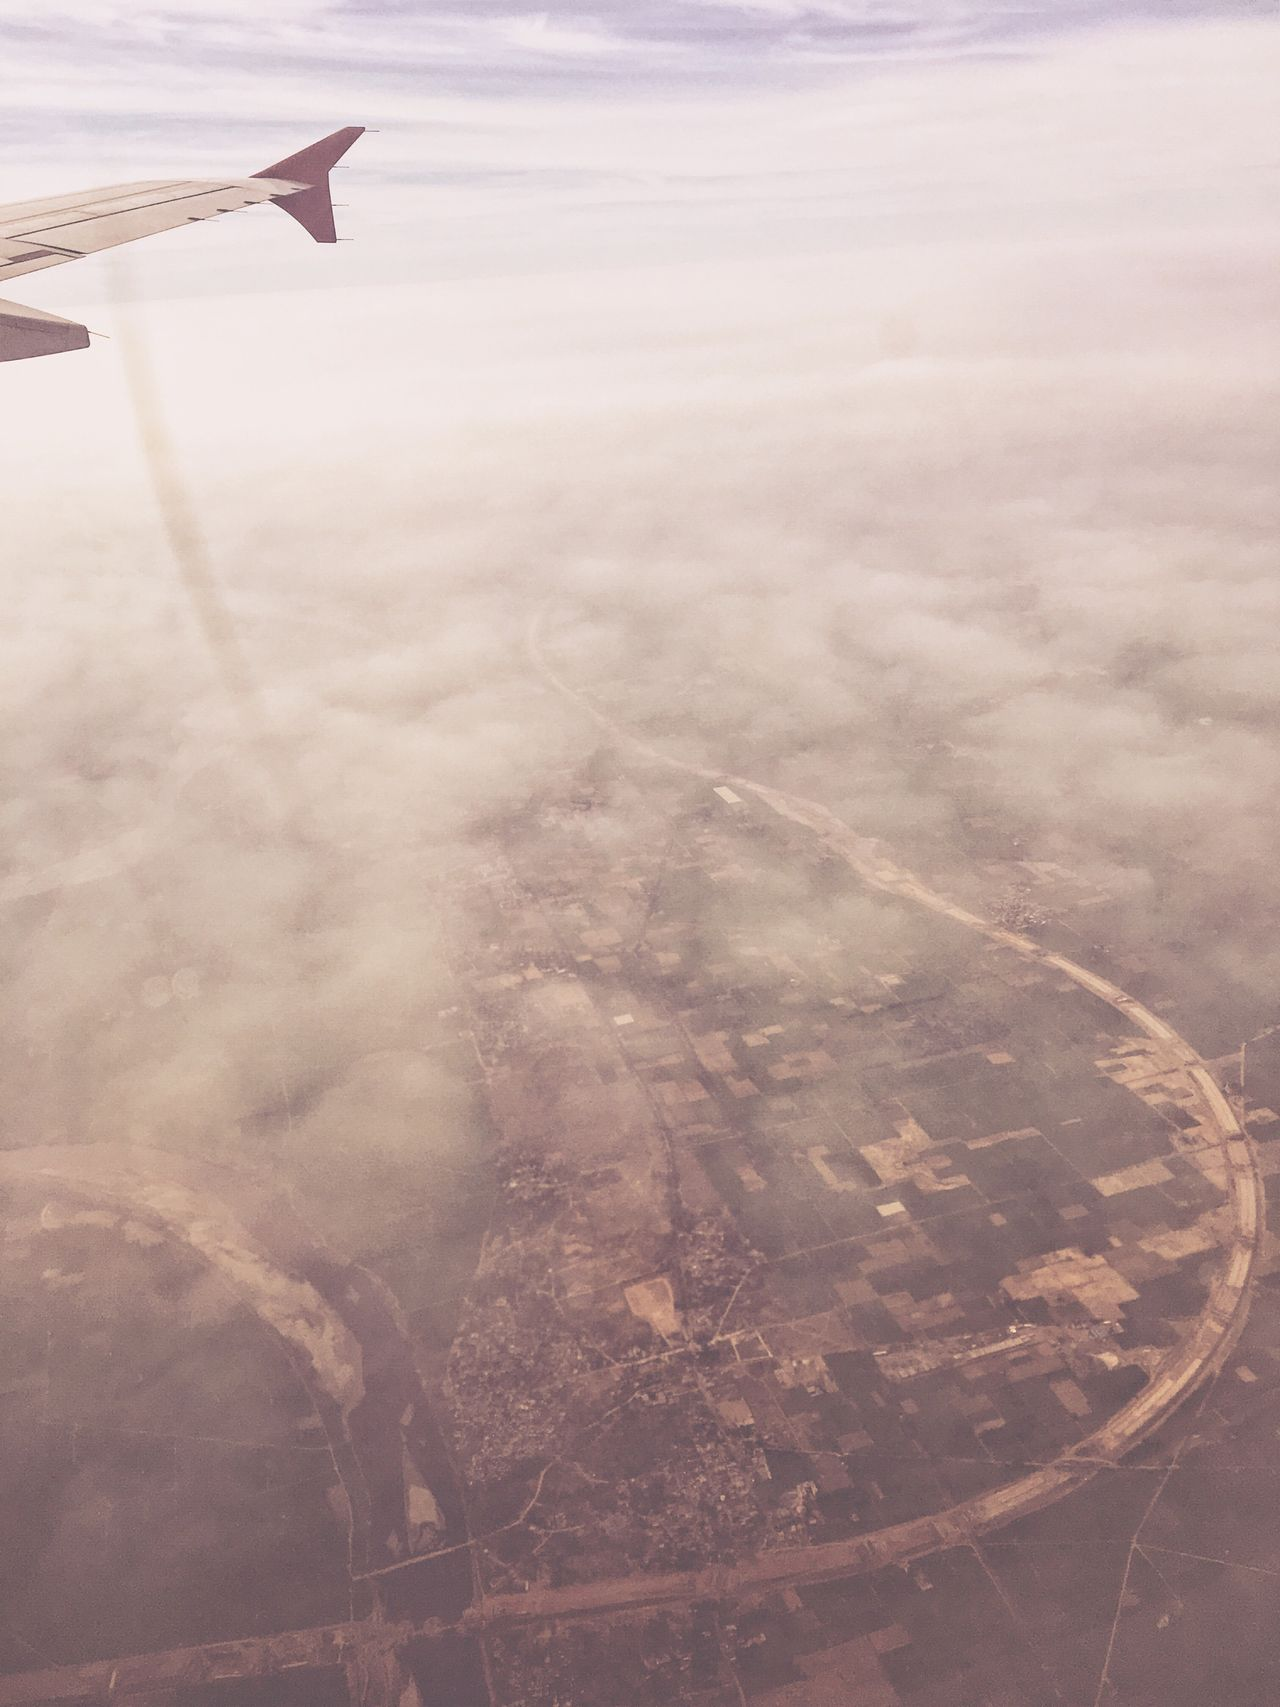 IPhoneography Aerial View Airplane Nature Beauty In Nature Landscape Flying Journey Transportation Tranquility Scenics No People Airplane Wing Outdoors Day Aircraft Wing Air Vehicle Sky IPhone